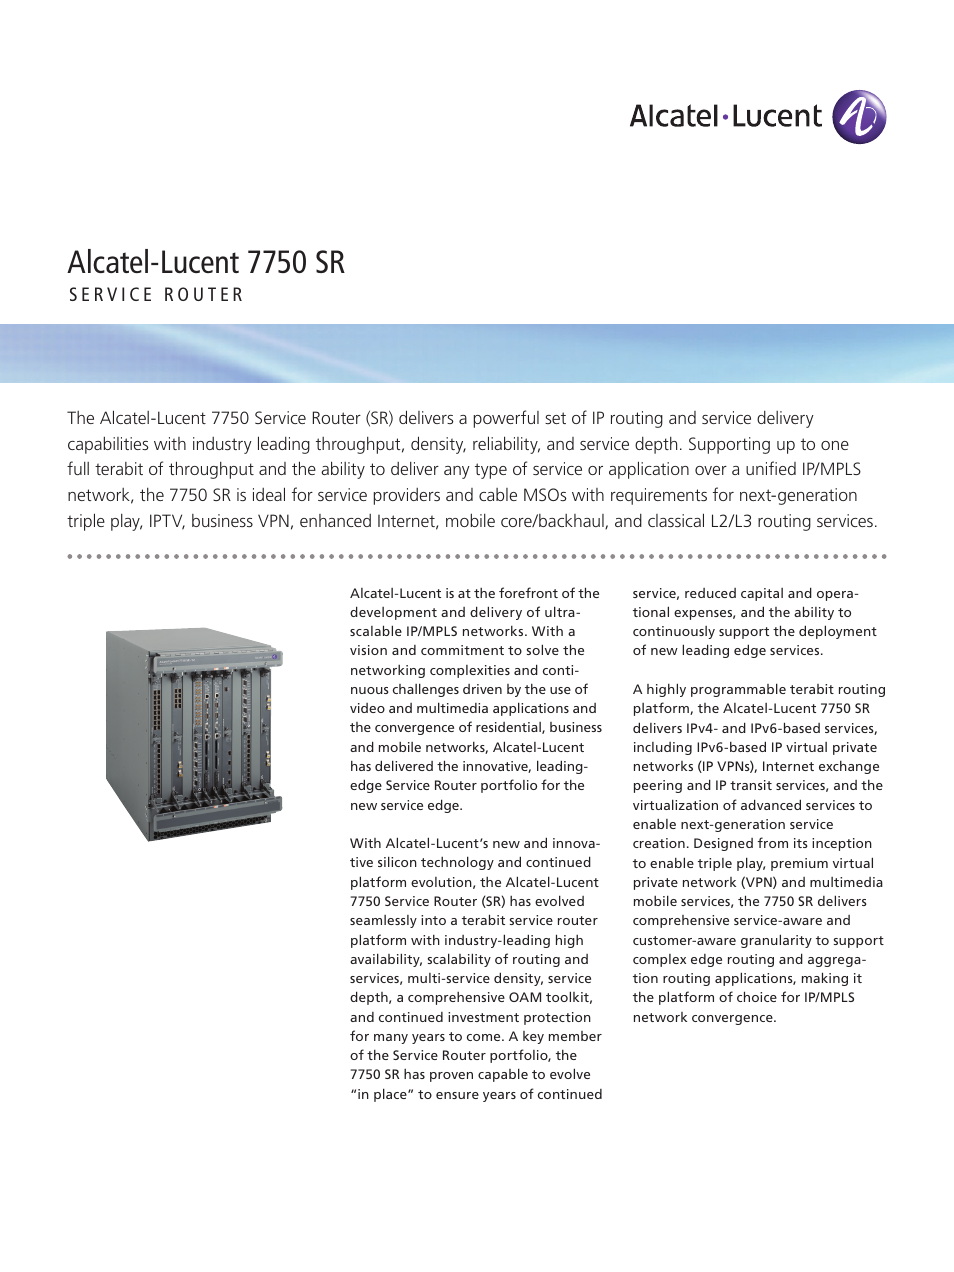 Alcatel Lucent 7750